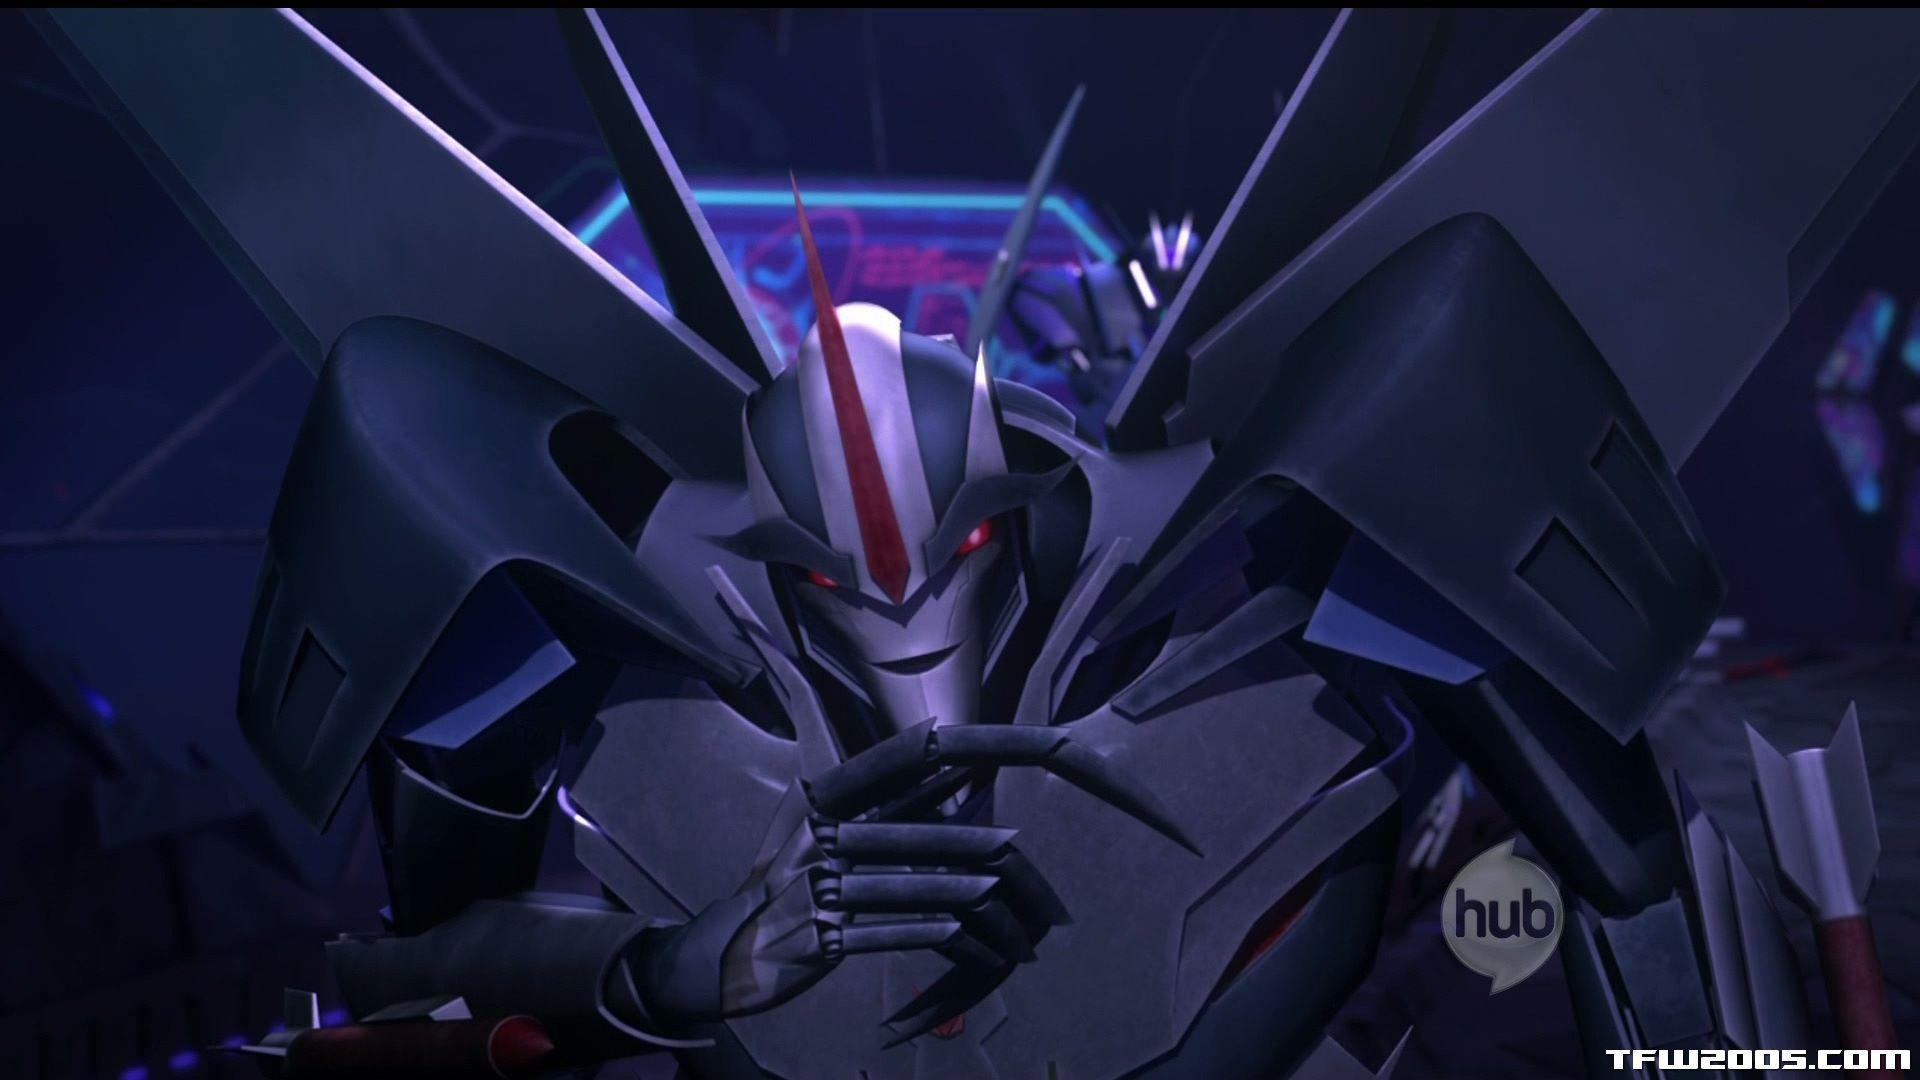 Image For > Starscream Wallpapers Tfp